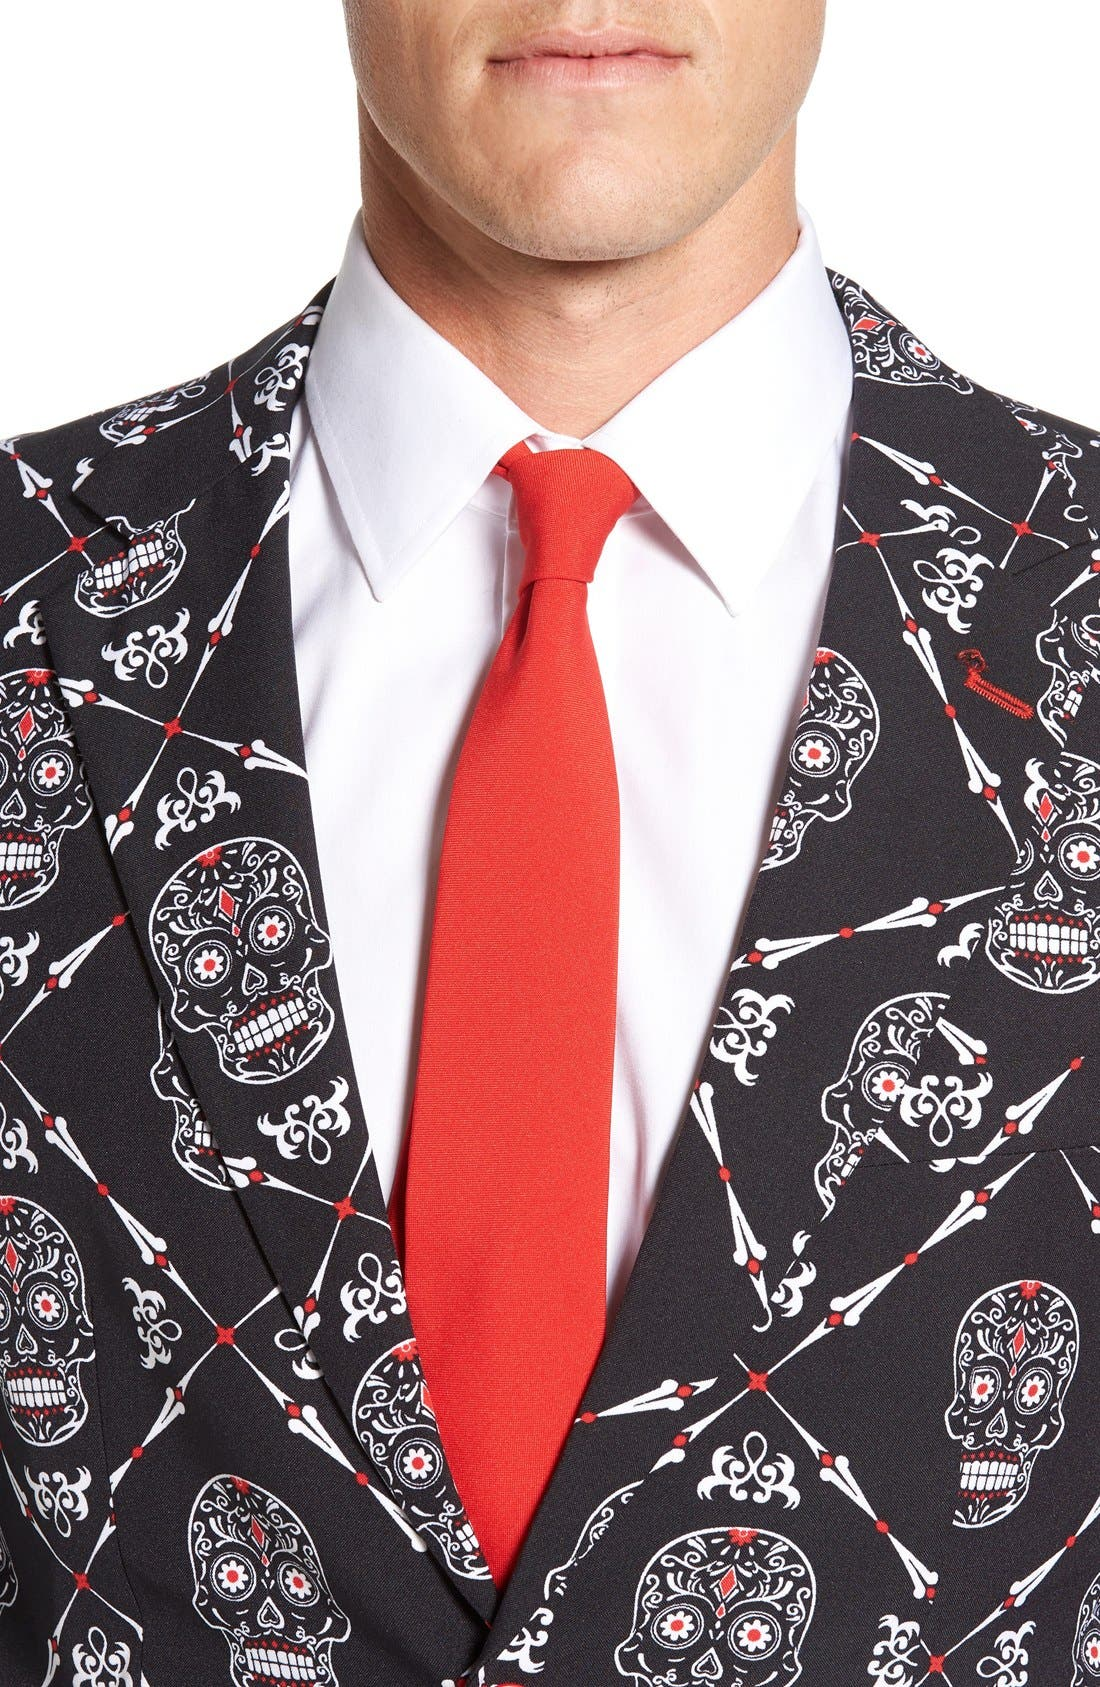 Alternate Image 4  - OppoSuits 'Haunting Hombre' Trim Fit Suit with Tie